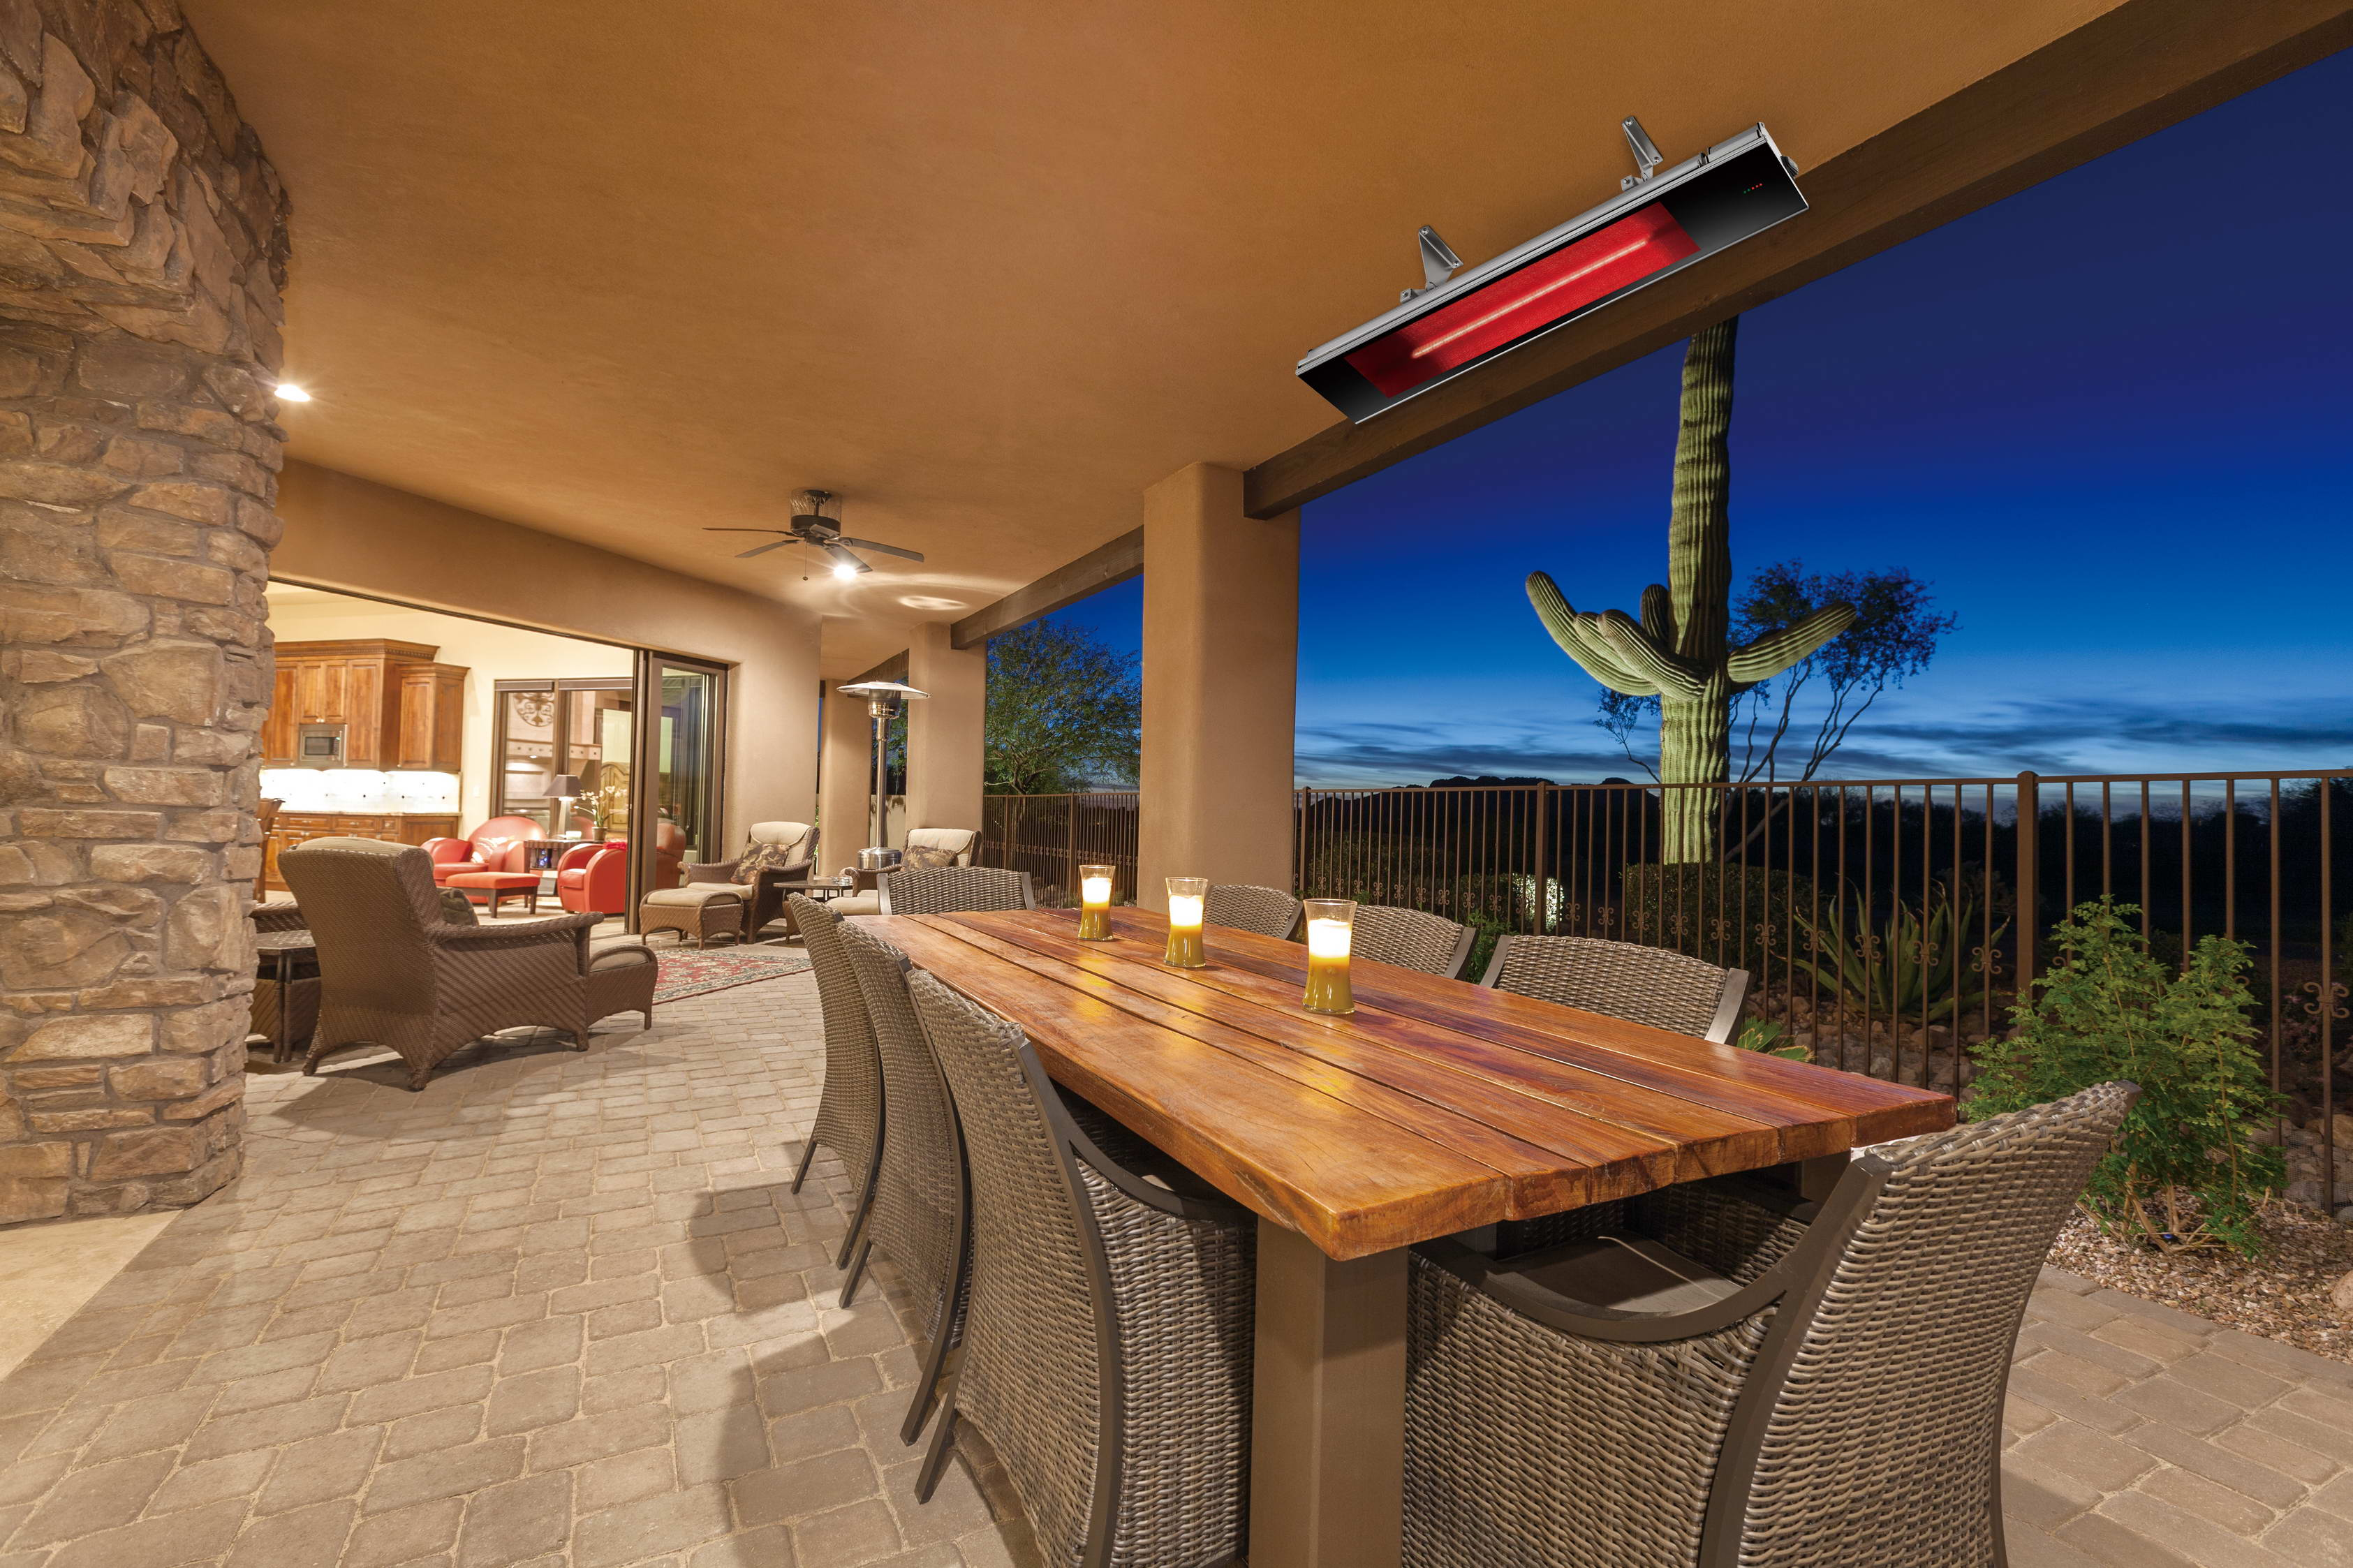 Luxury desert home patio with dining table after sunset.